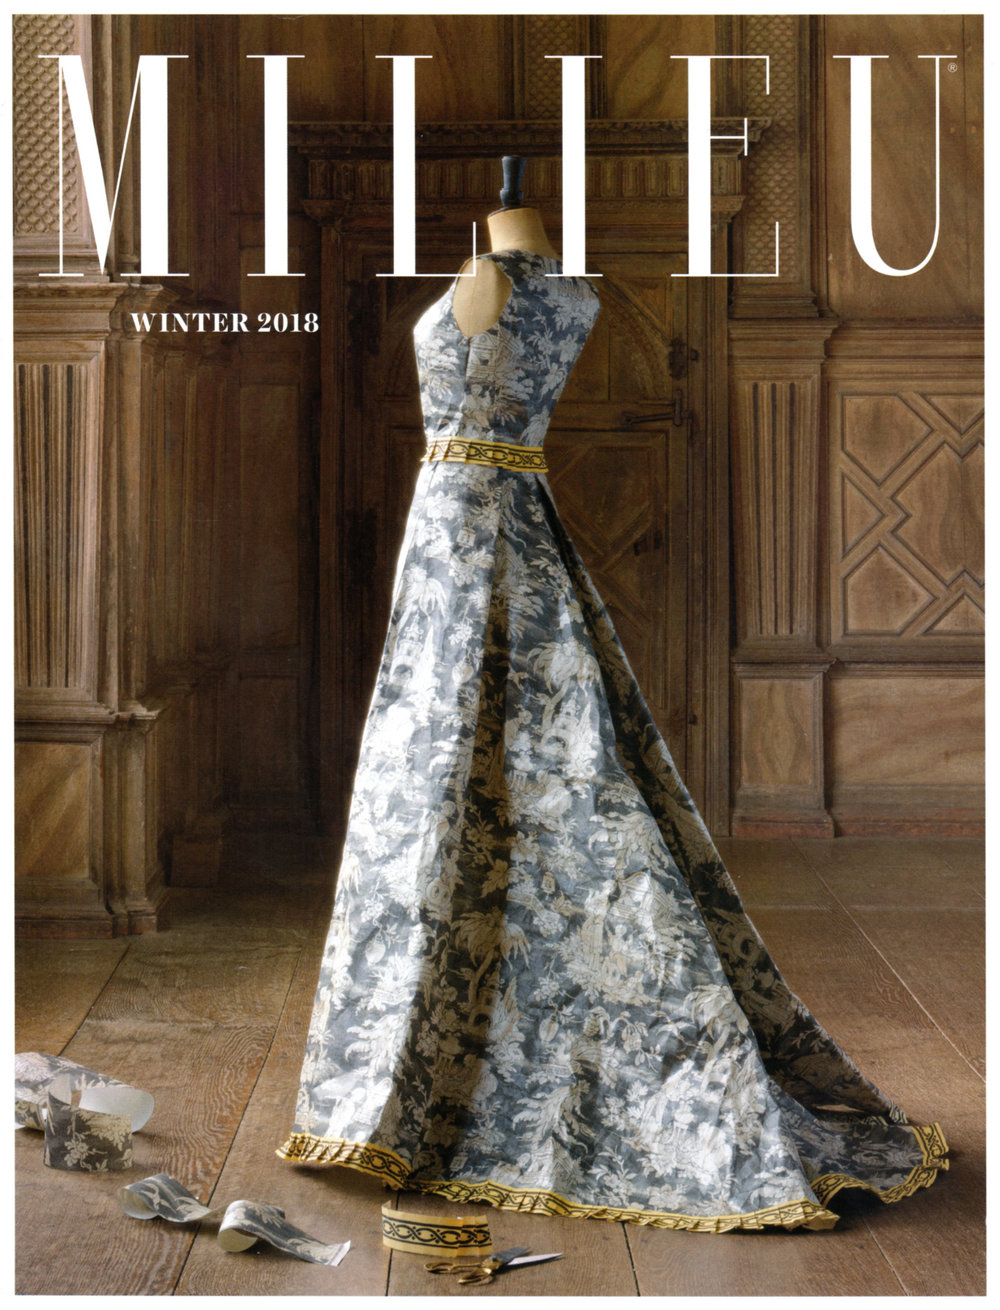 Milieu Winter 2018 cover.jpg